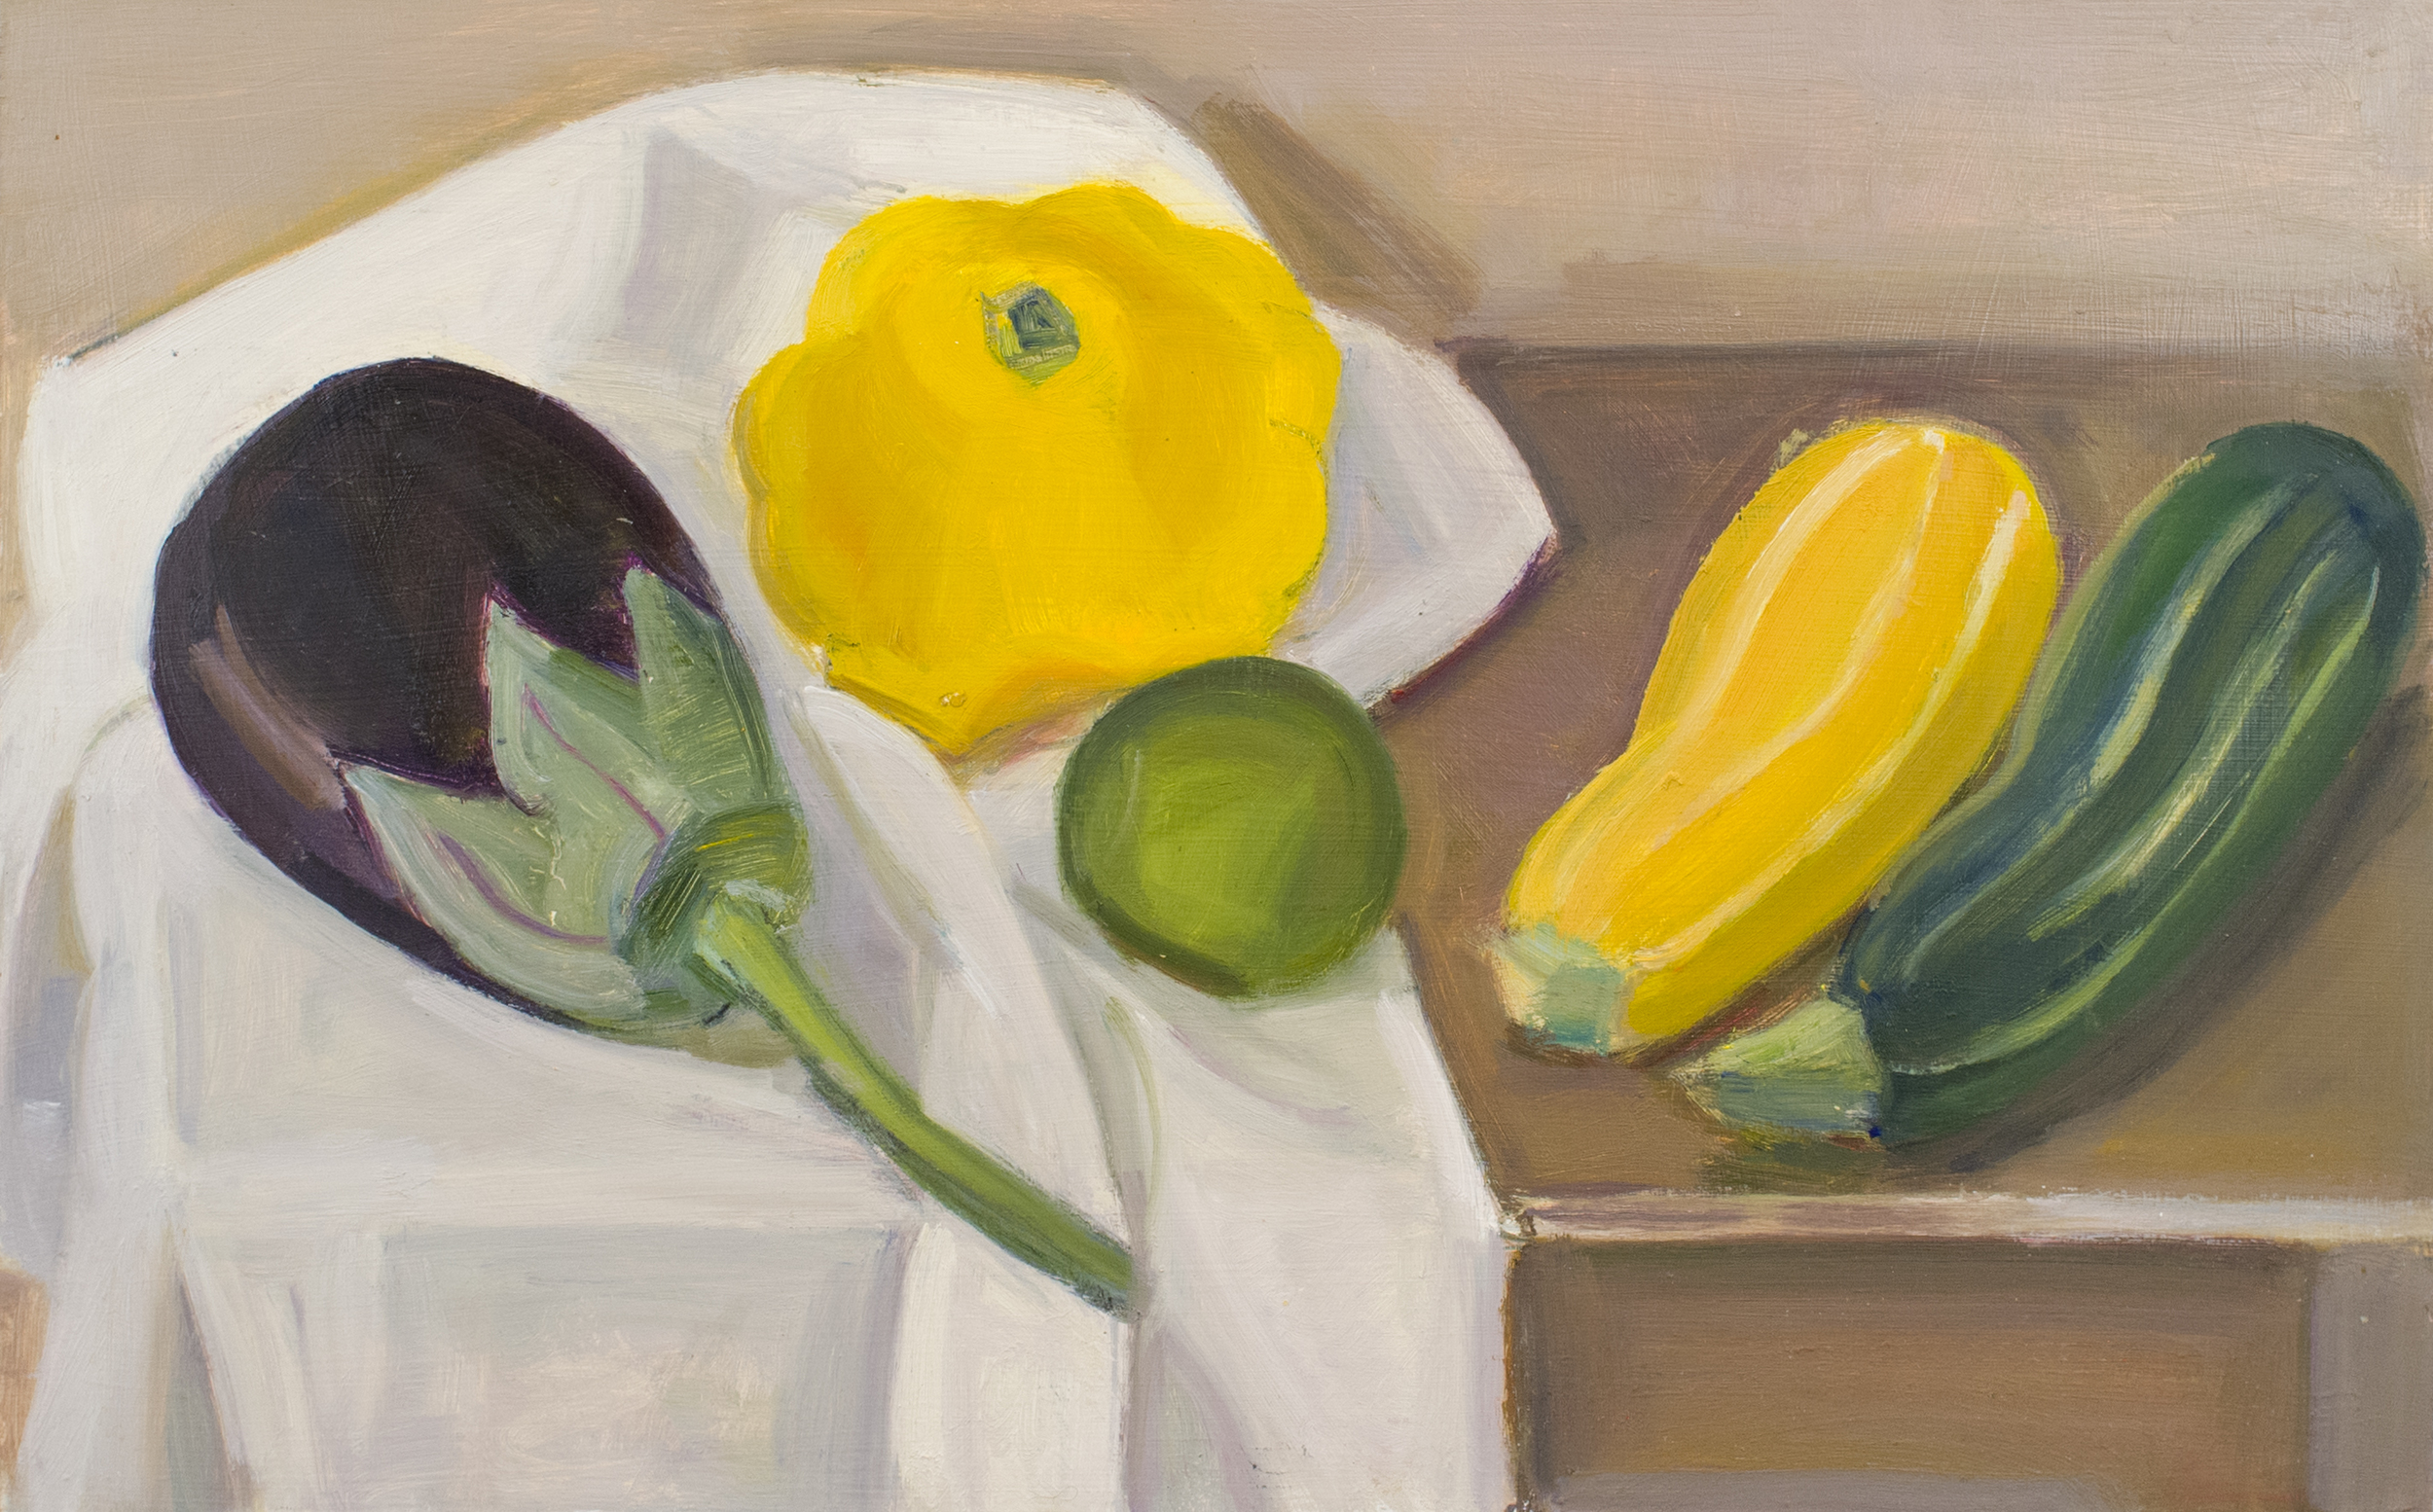 """Eggplant, Pattypan and Two Striped Squash, Green and Yellow, with Lime, oil on panel, 10""""x16"""""""